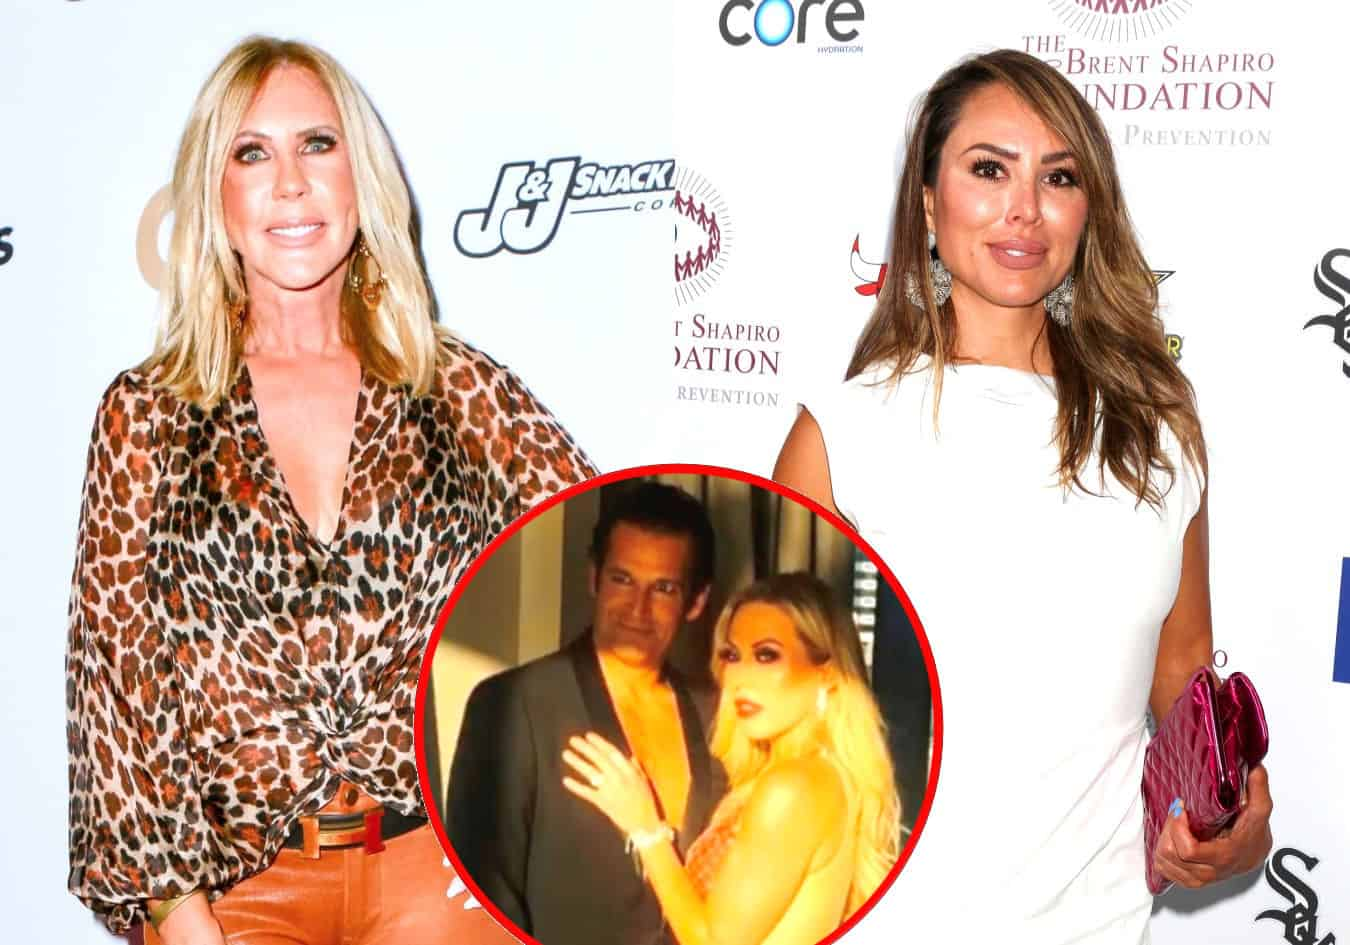 RHOC's Vicki Gunvalson Calls Out Kelly Dodd for Con Woman Allegations, Reacts to Braunwyn Windham-Burke's Husband Sean Wearing Heels